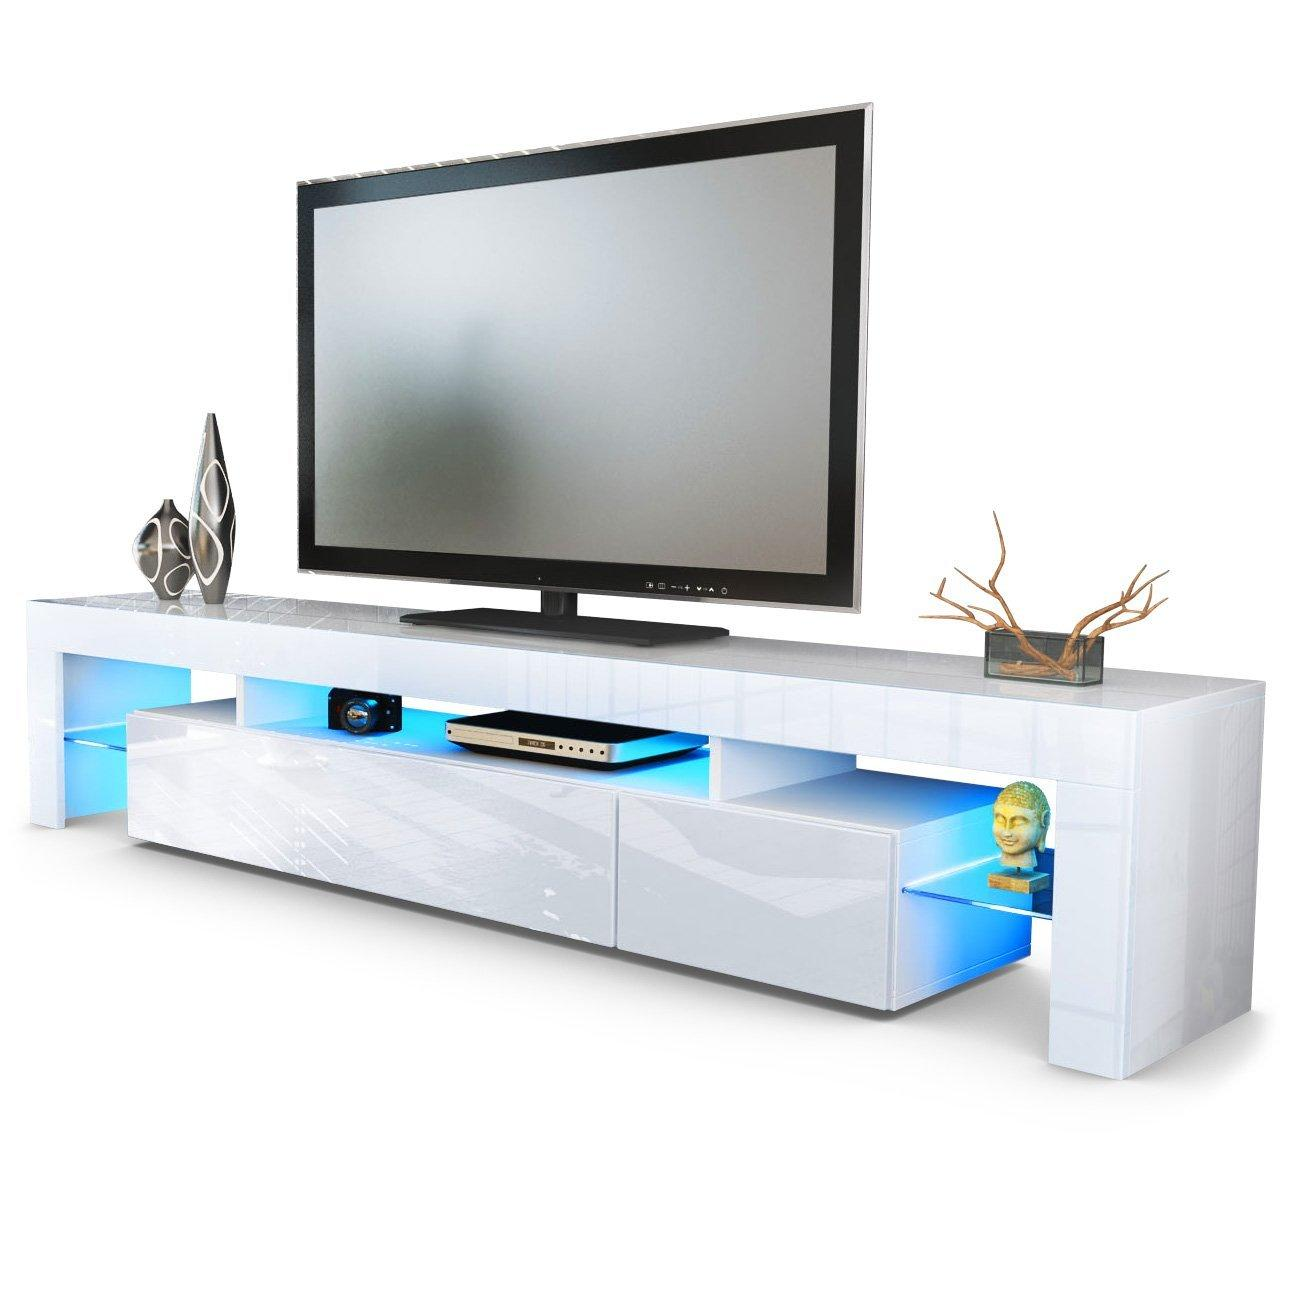 Meuble Tv Blanc A Led Firstcdiscount # Meuble Ovio Blanc